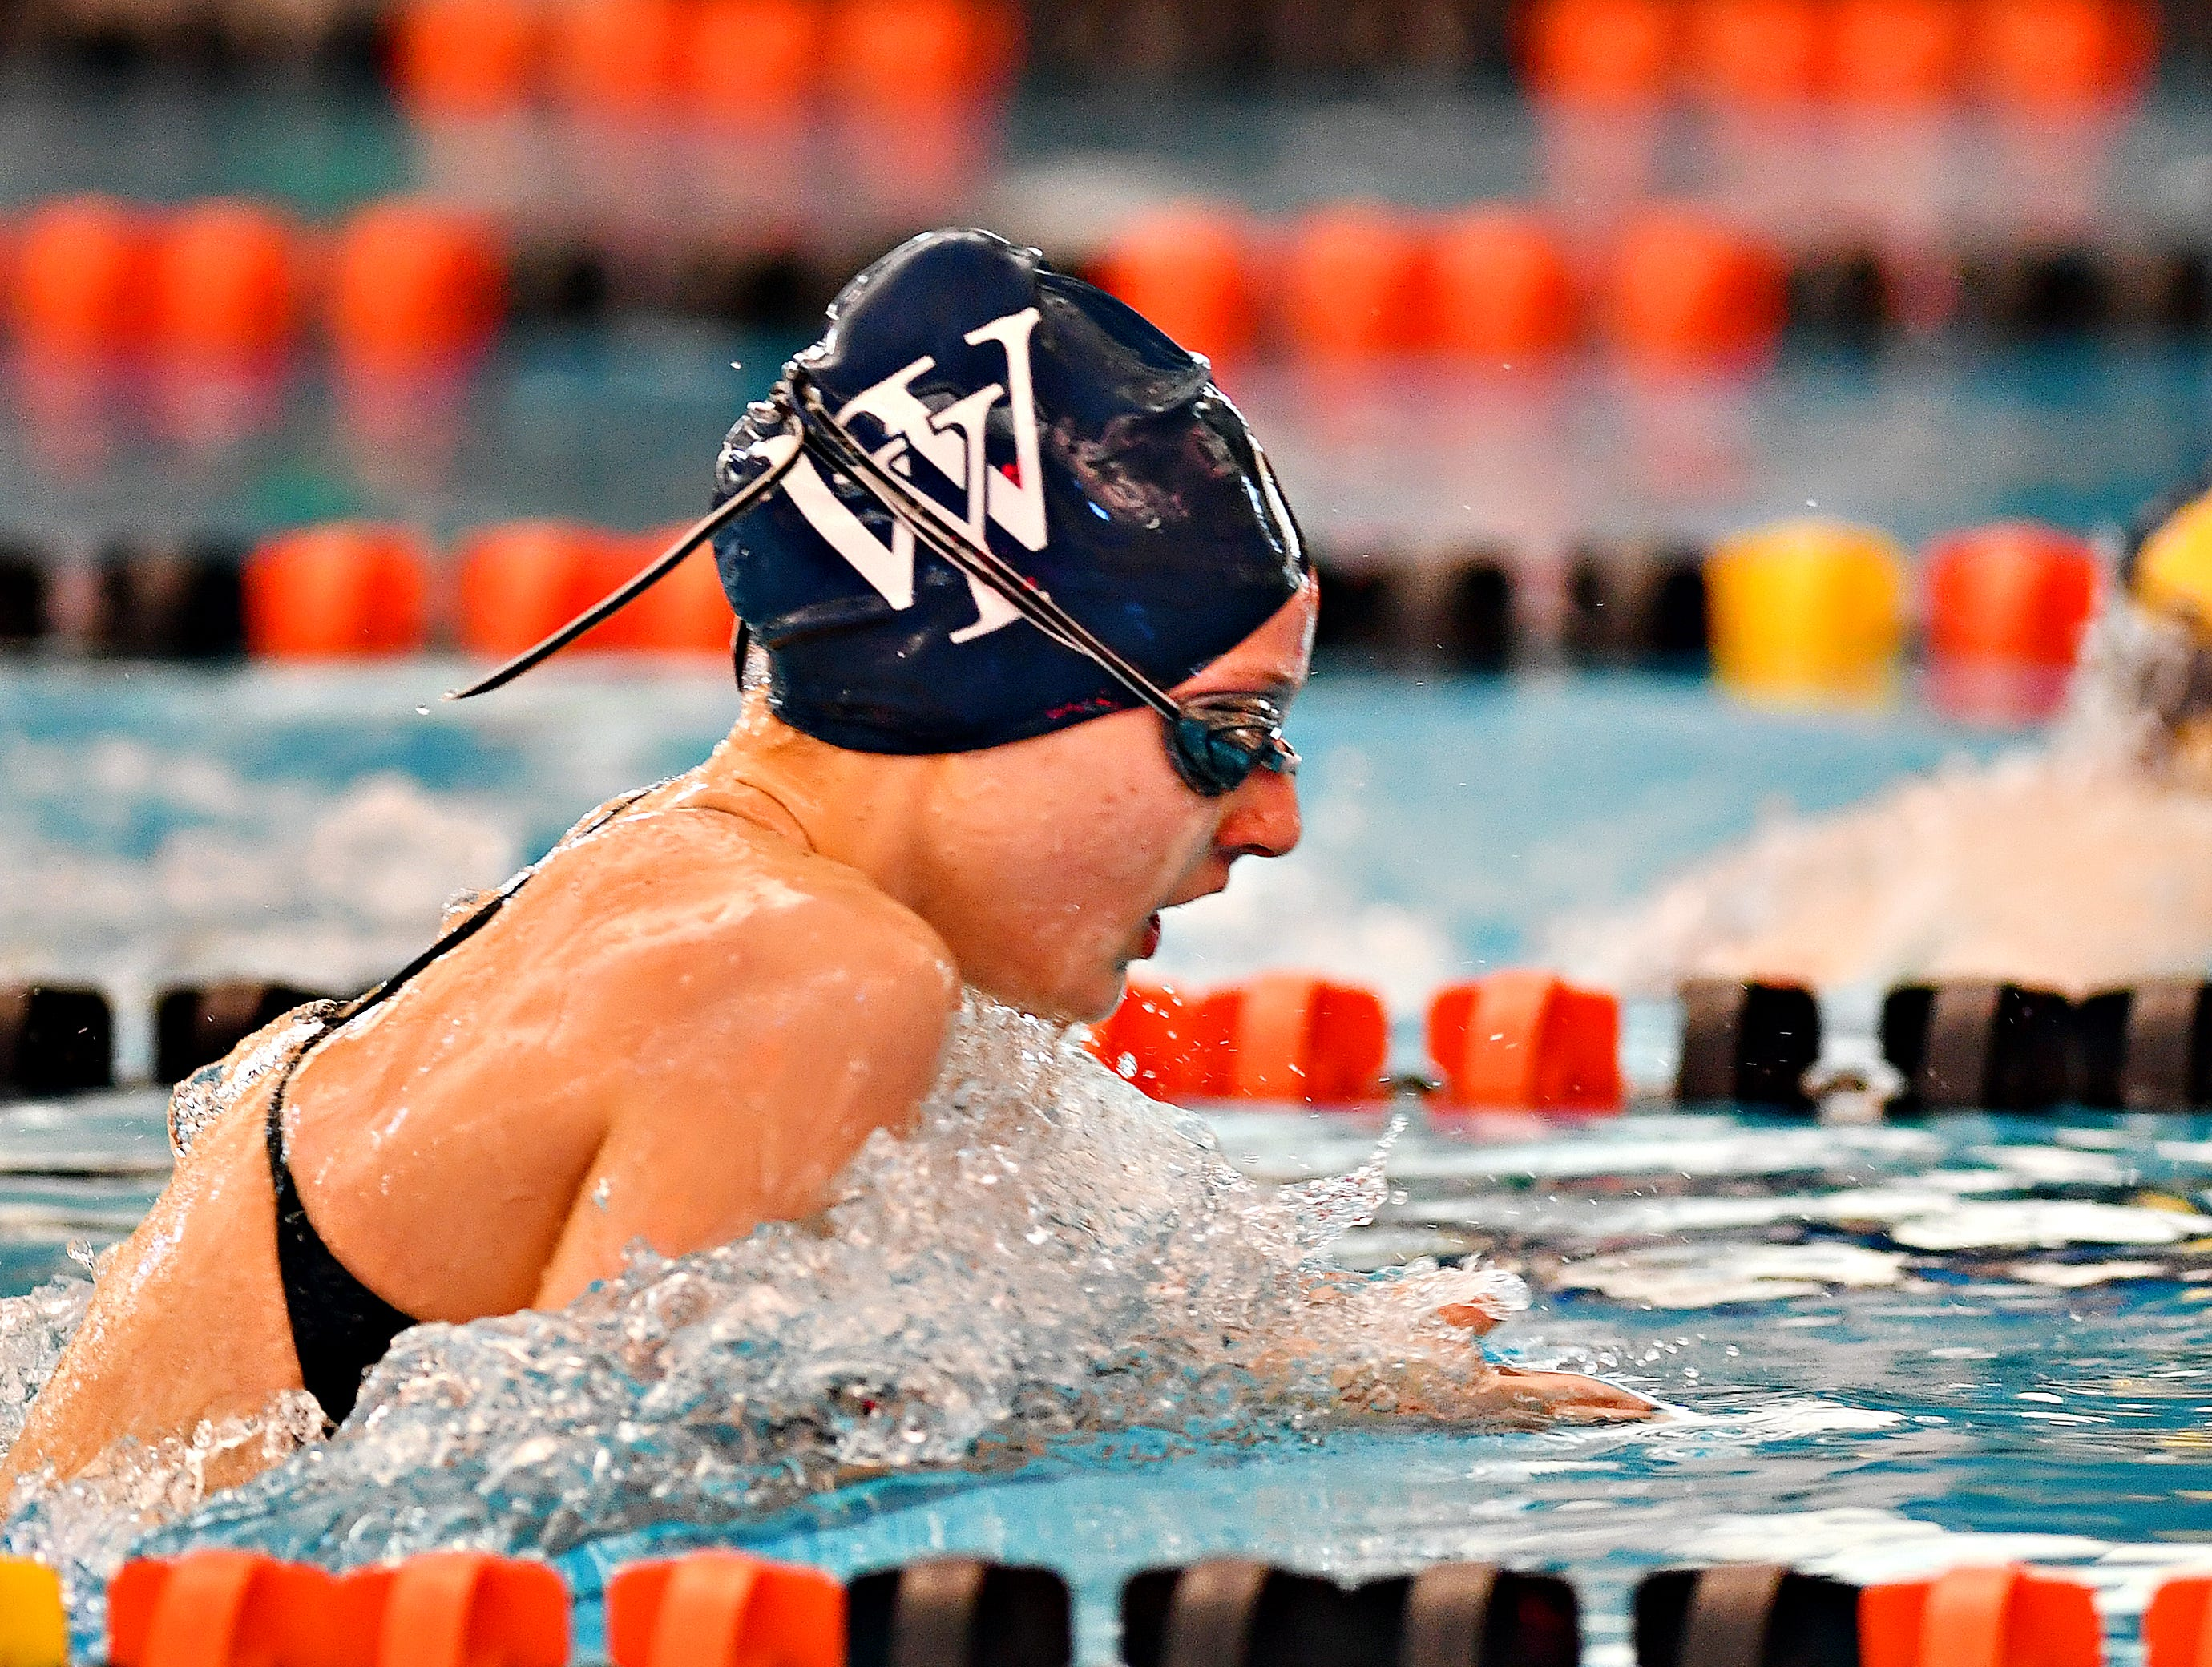 West York's Meaghan Harnish competes in the 100 Yard Breaststroke event during York-Adams League Swimming Championship at Central York High School in Springettsbury Township, Saturday, Feb. 9, 2019. Harnish would win the event at 1:05.86. Dawn J. Sagert photo